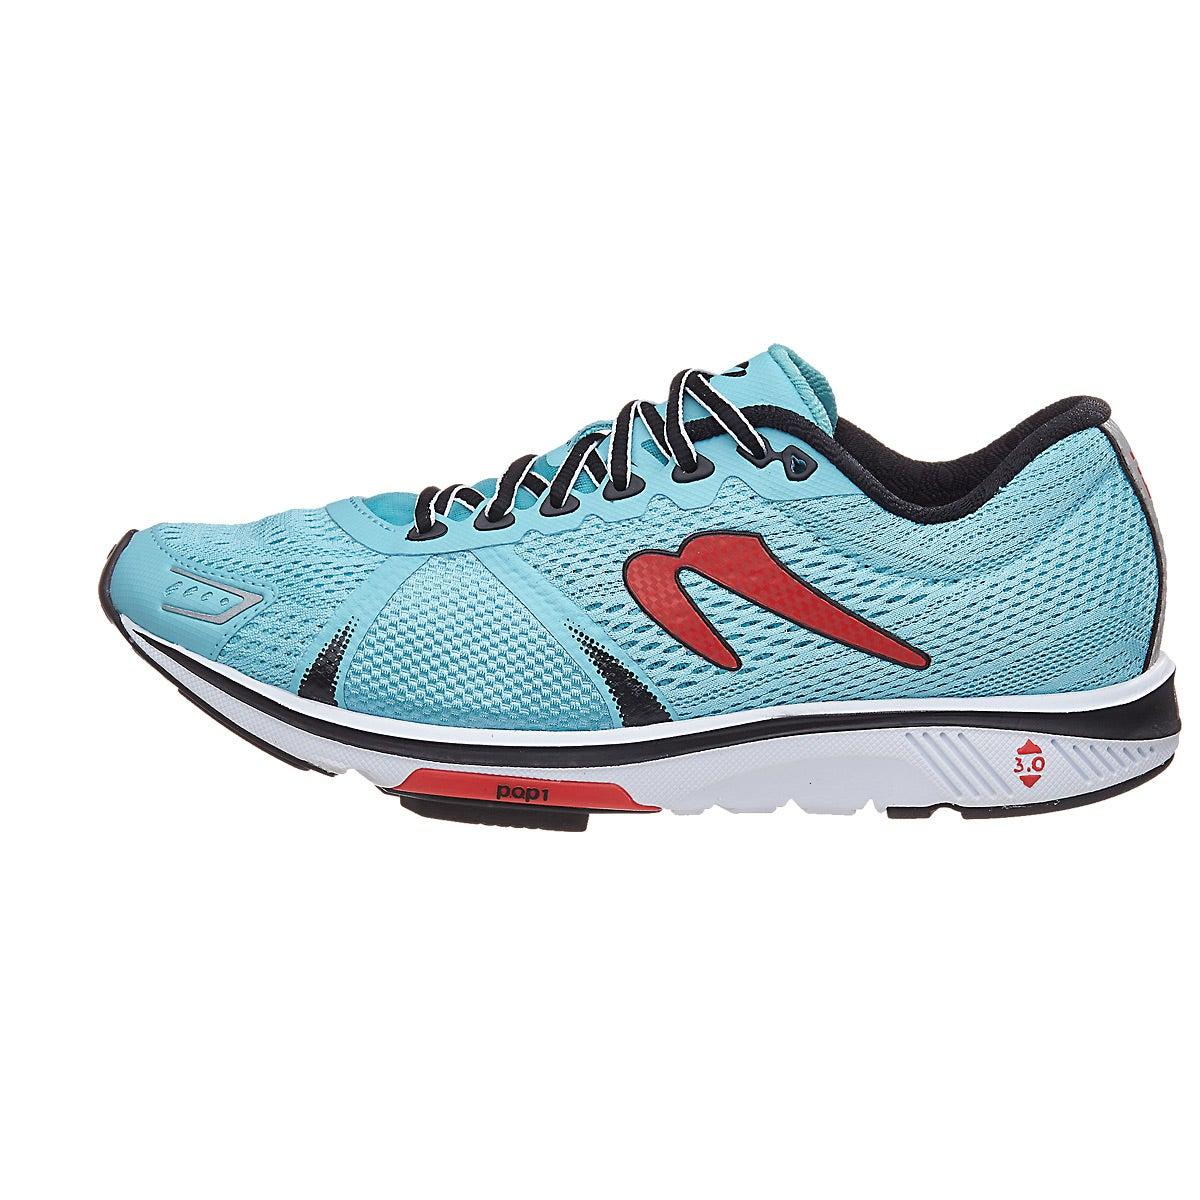 Running In Newton Shoes